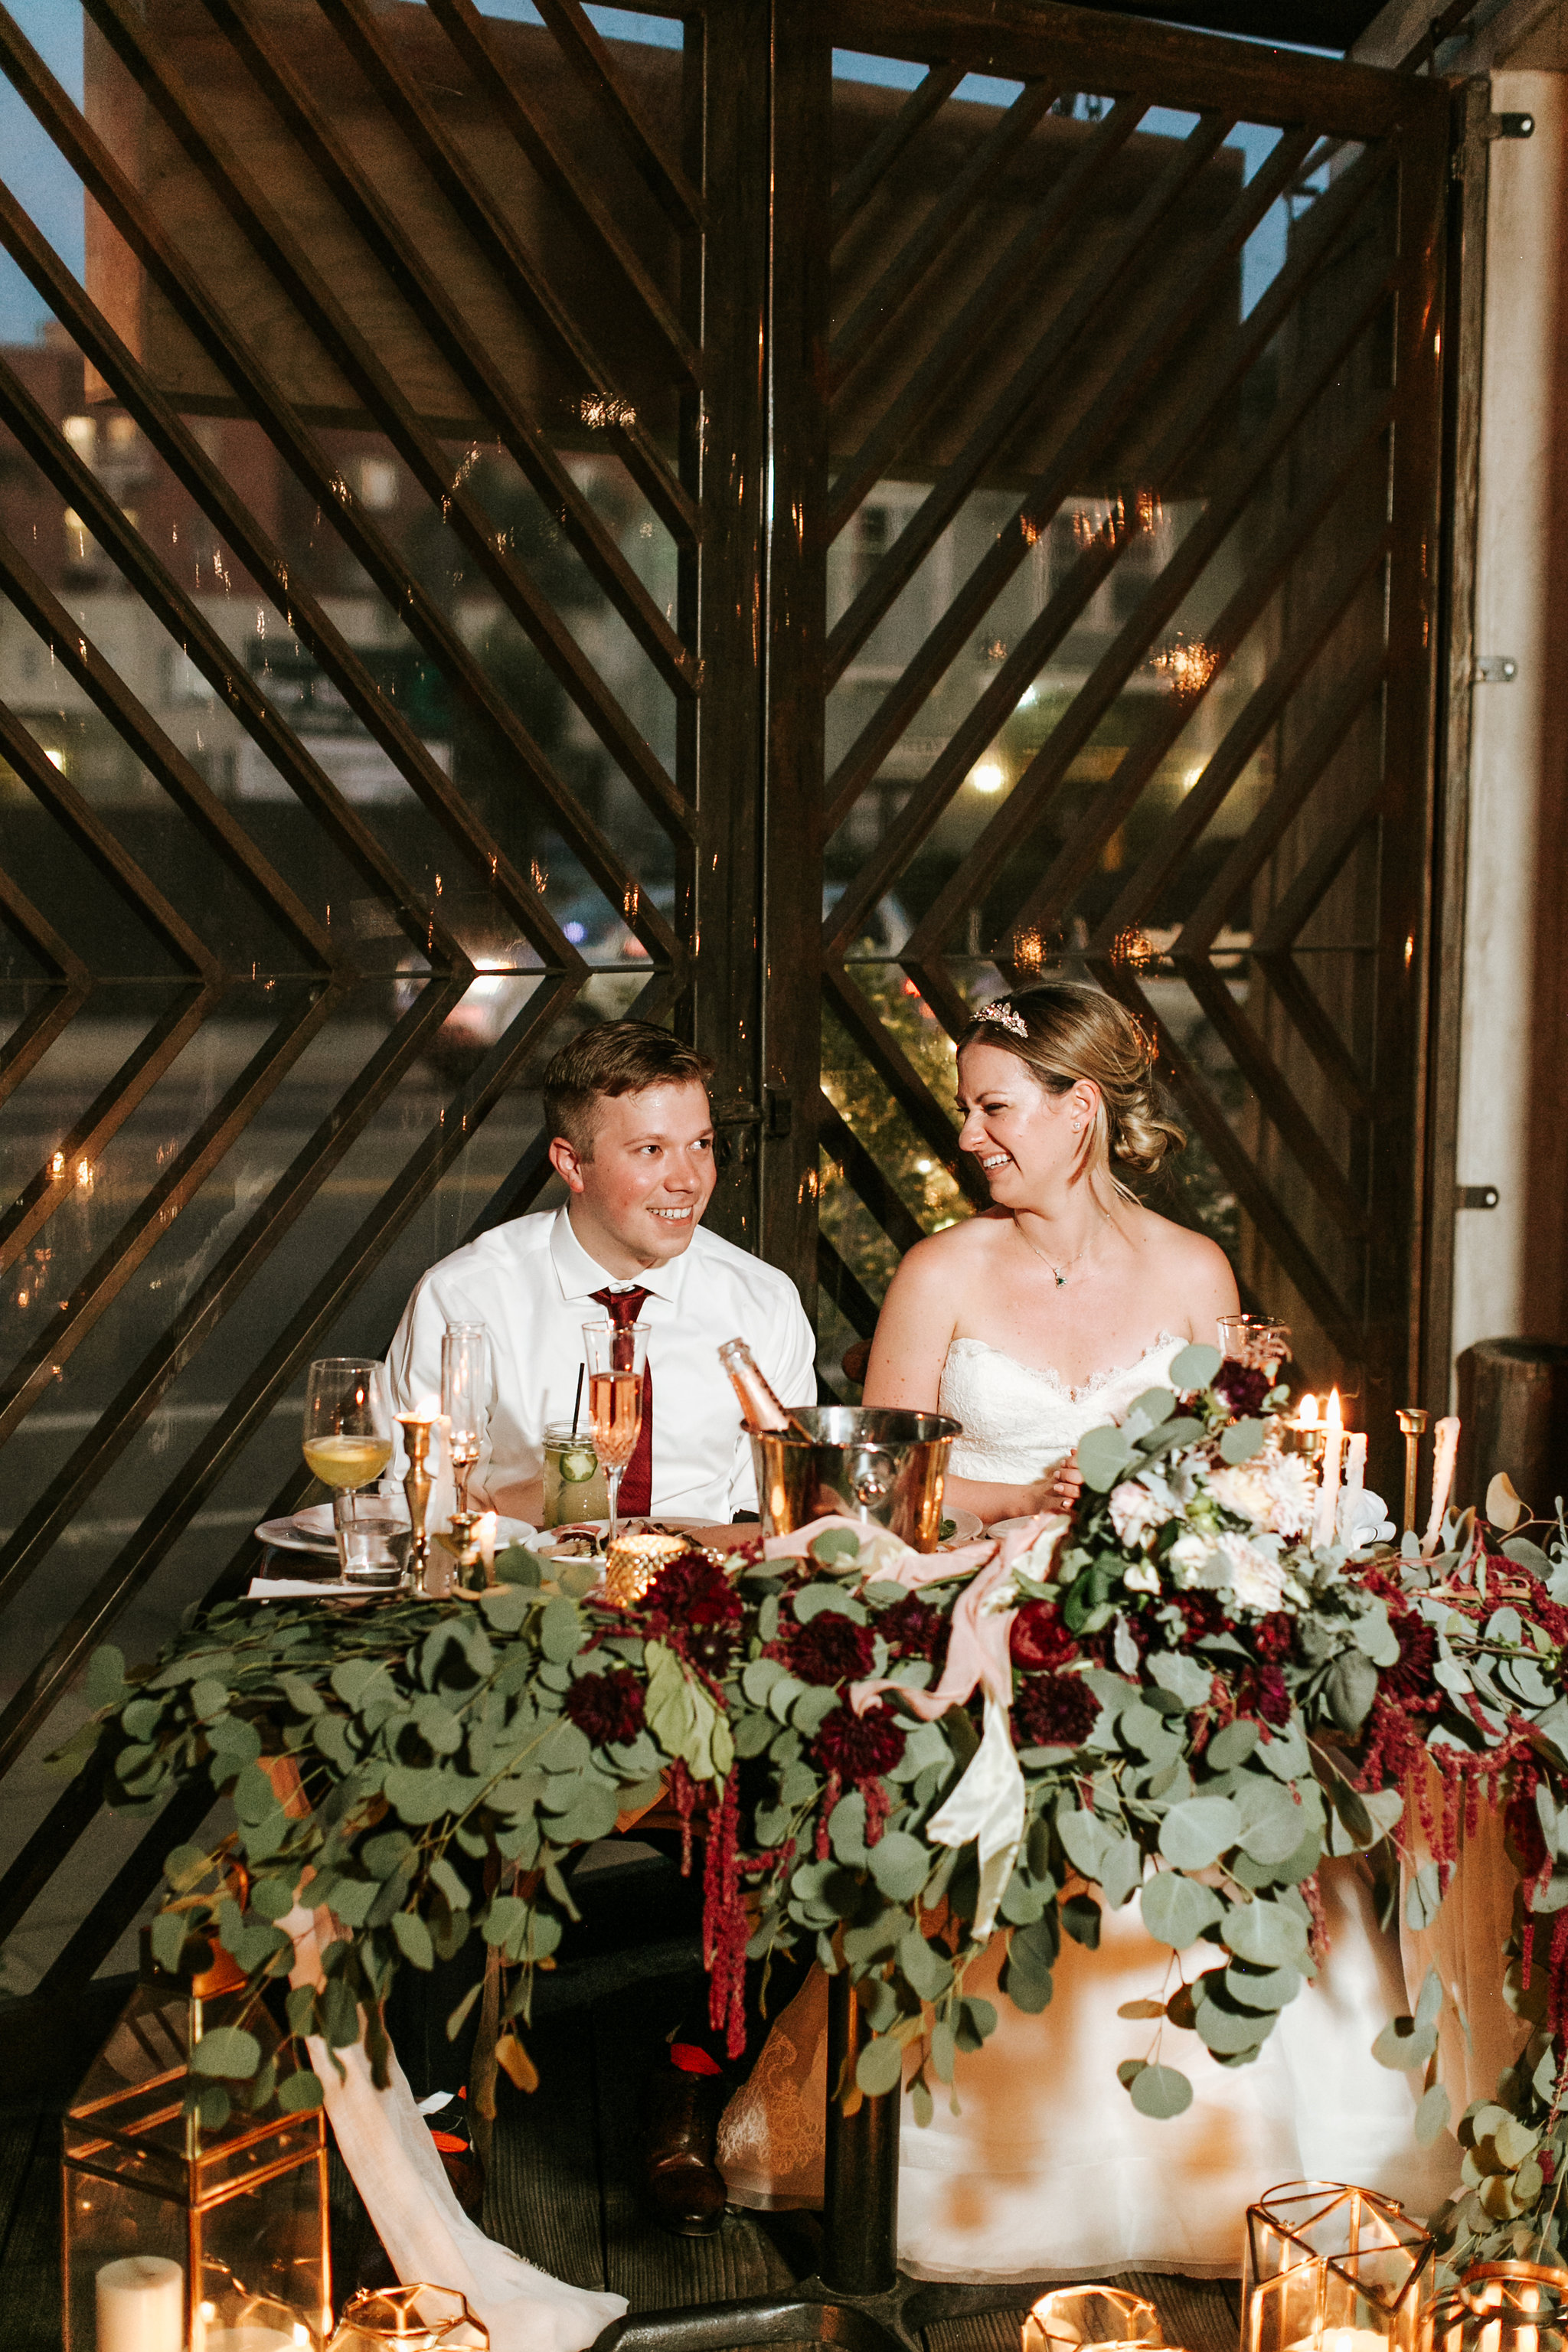 Mr. and Mrs. Grady - Jenna Bechtholt Photography - Wedding at Madera Kitchen --18